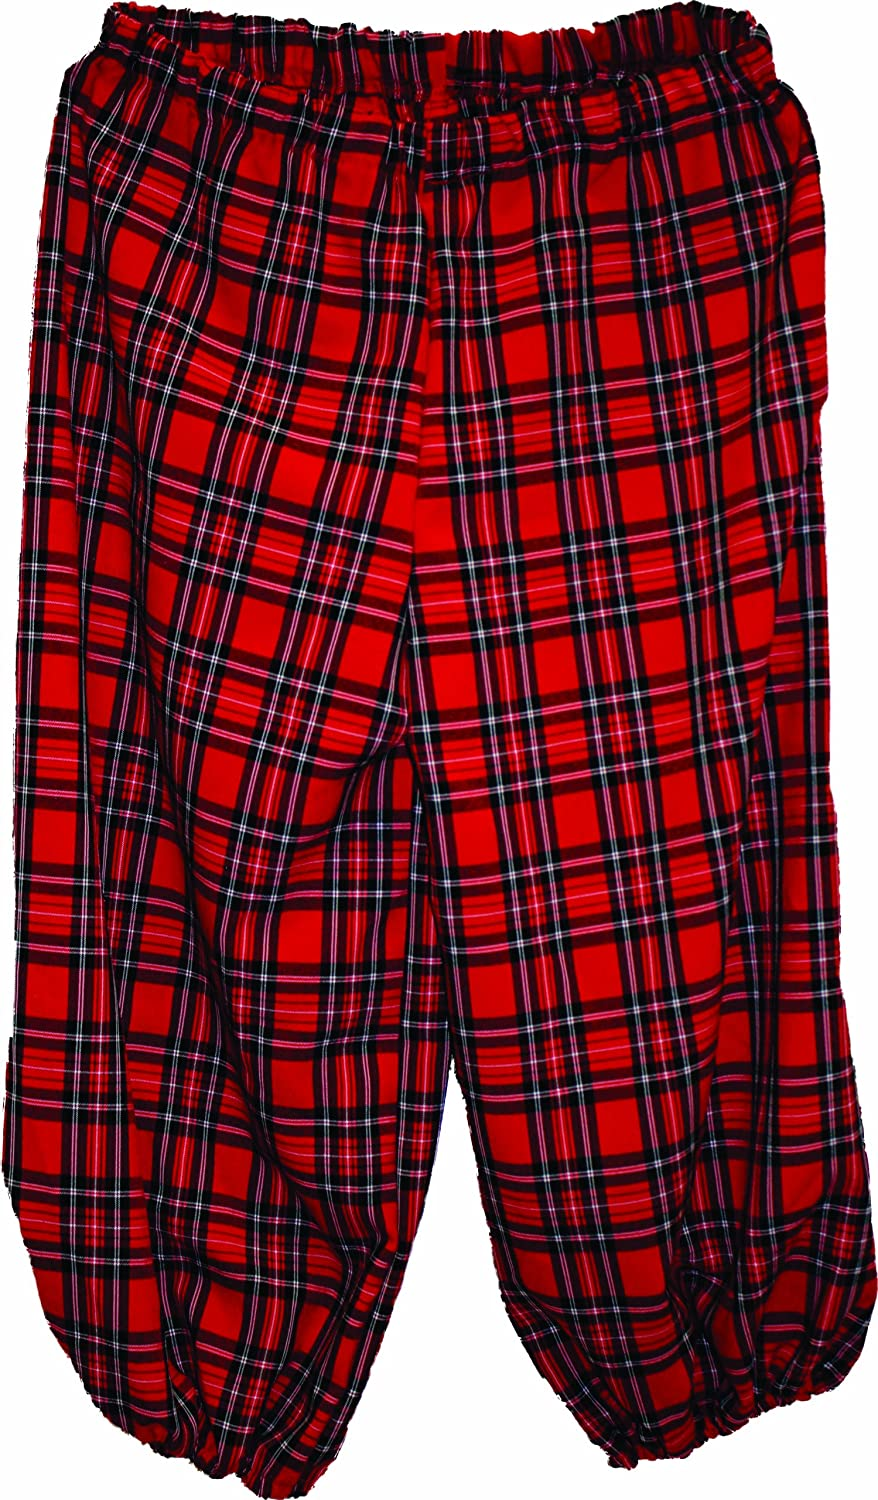 Men's red plaid pirate knickers, pirate breeches, pirate pants, pirate trousers by Alexanders Costumes